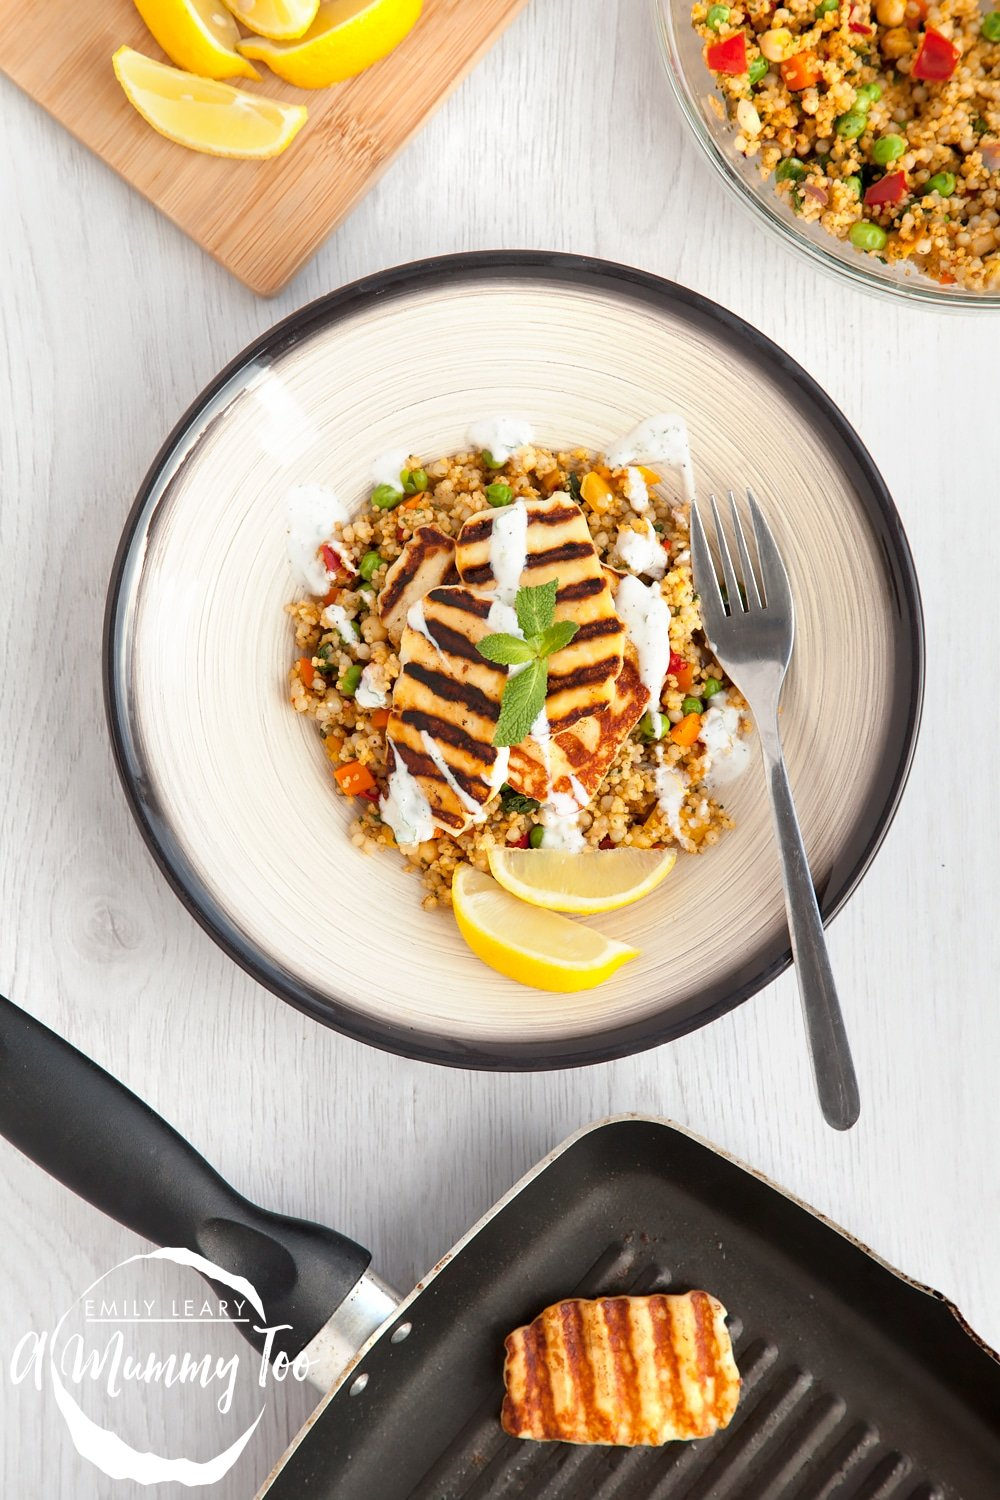 Vegetable rich couscous topped with dry-fried halloumi and drizzled with a zesty mint yoghurt dressing.